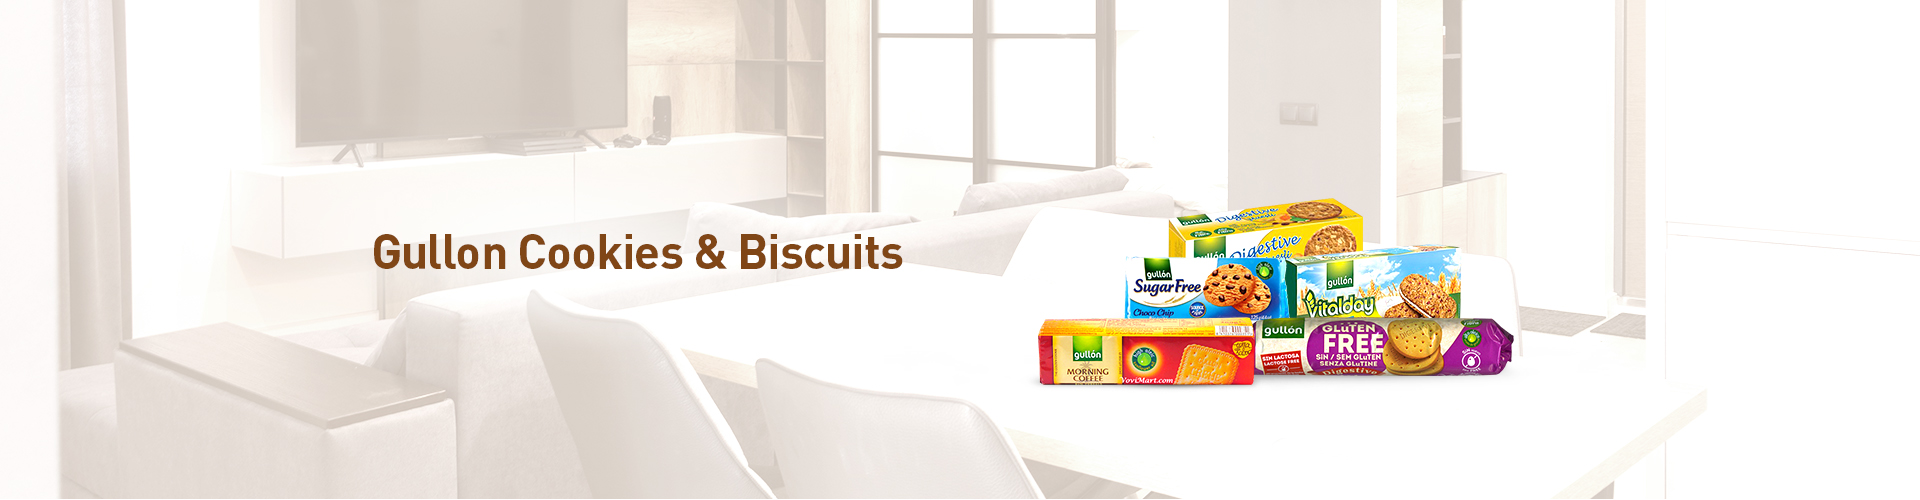 Gullon Cookies and Biscuits